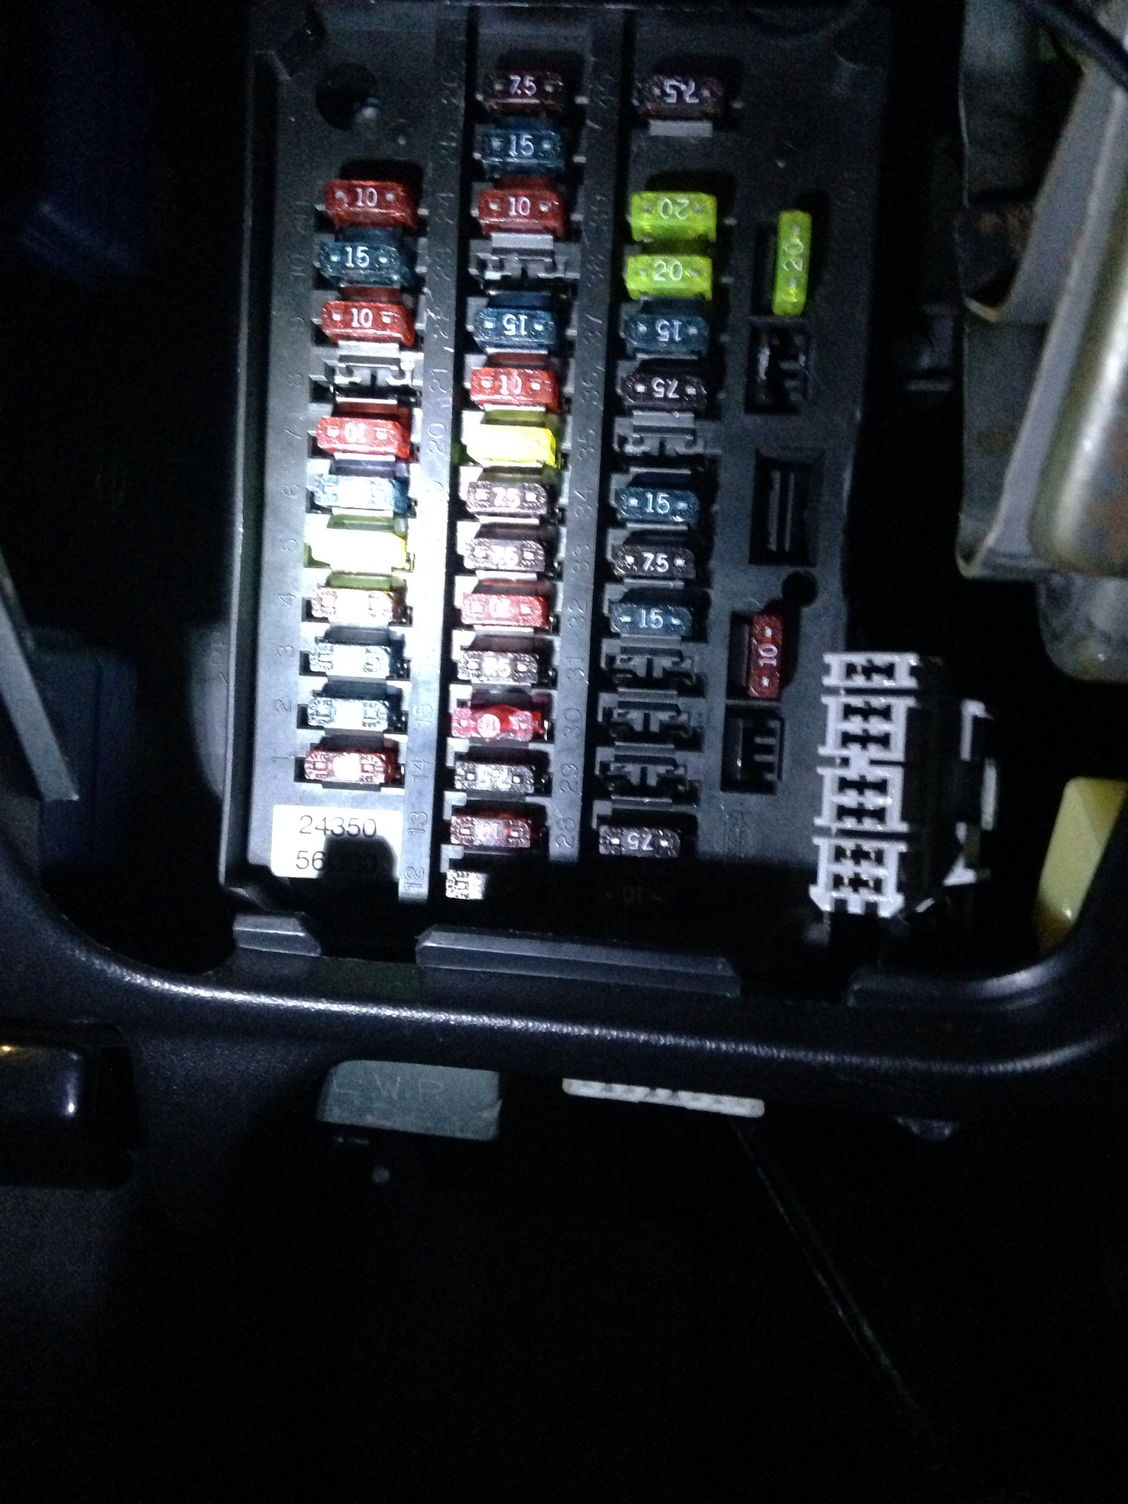 2008 nissan maxima fuse box diagram   35 wiring diagram